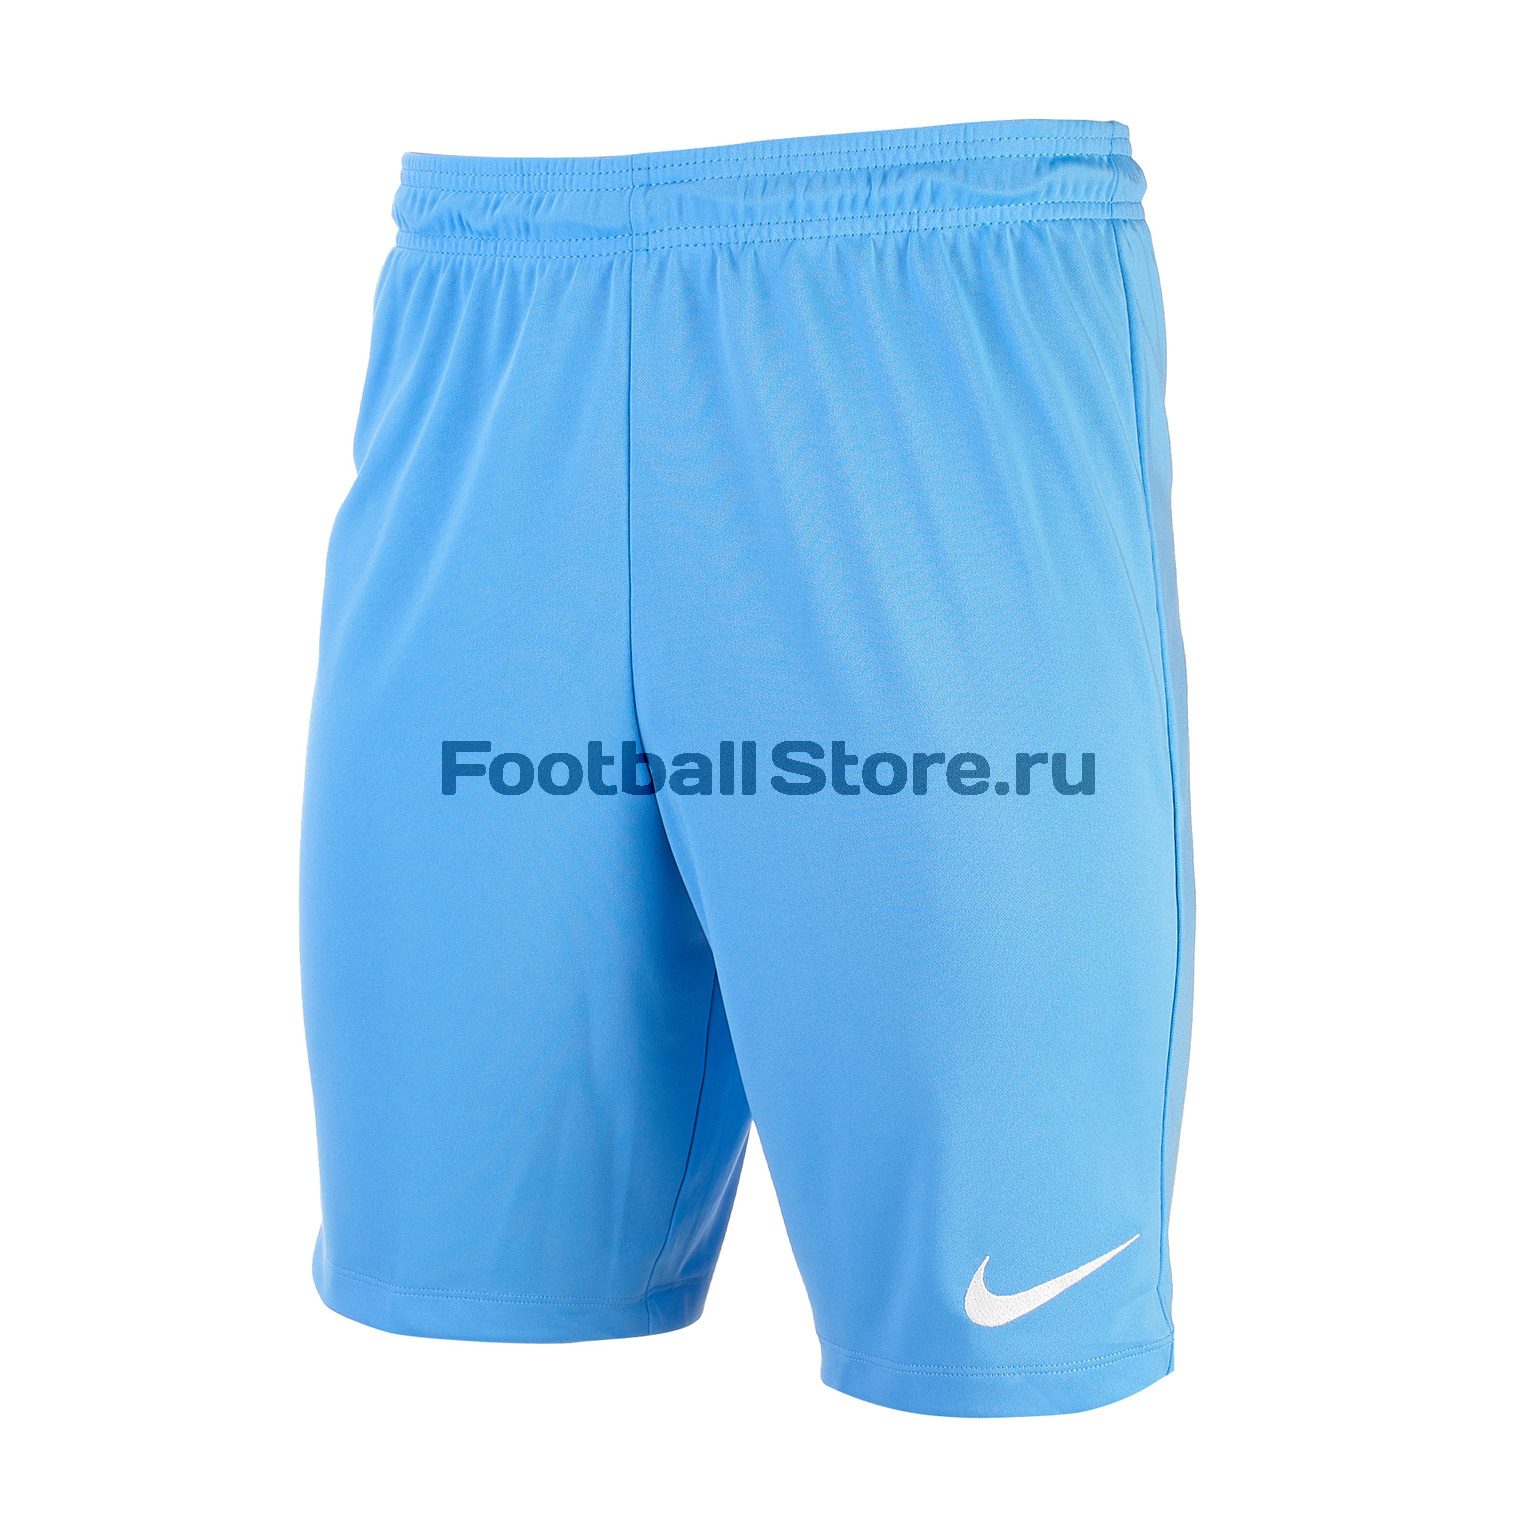 цена на Шорты Nike Park II KNIT Short NB 725887-412